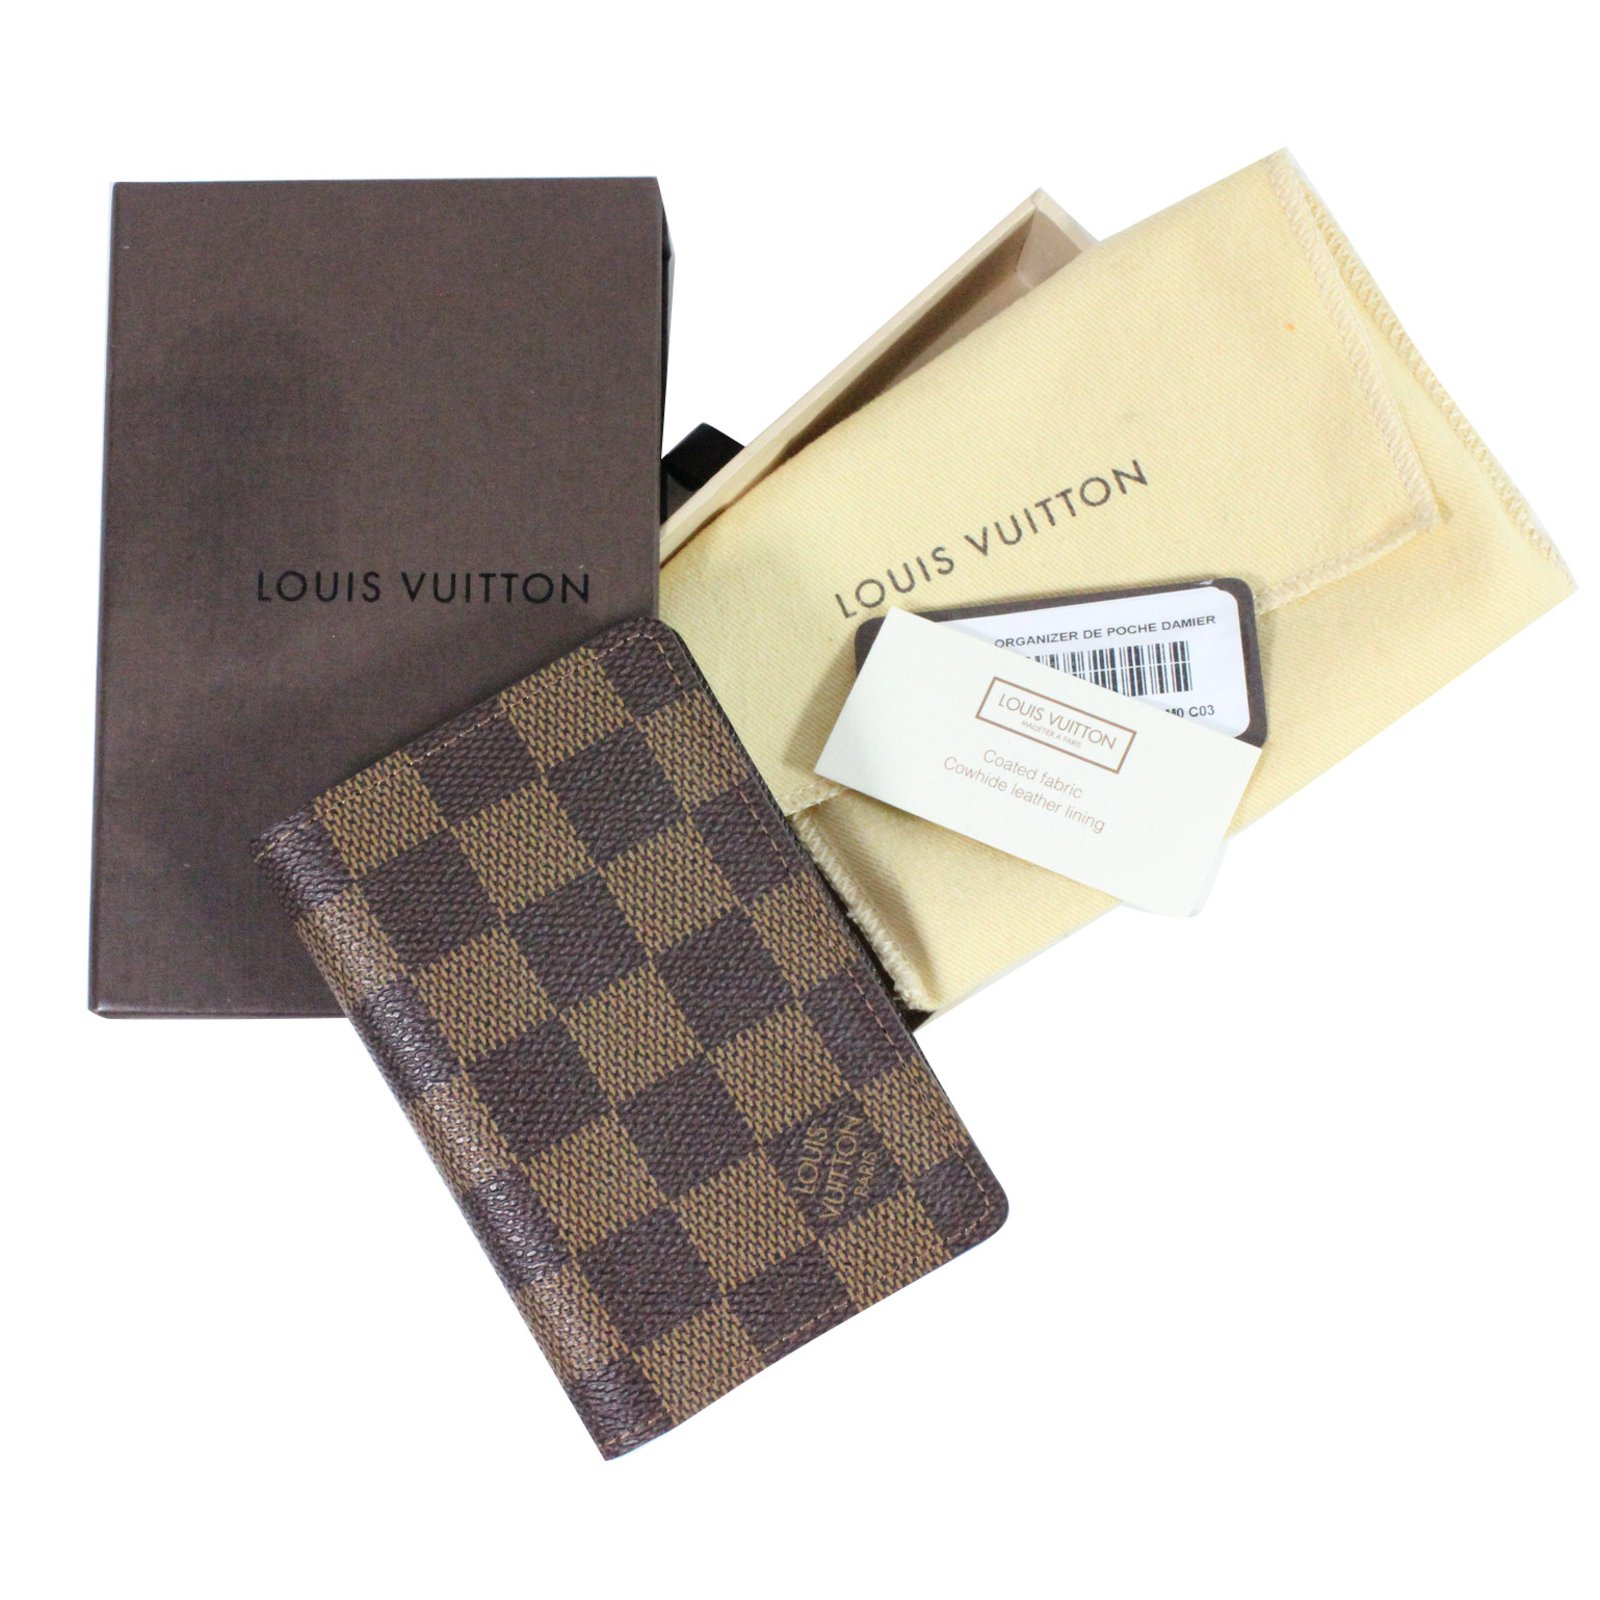 portefeuilles louis vuitton porte carte damier autre autre joli closet. Black Bedroom Furniture Sets. Home Design Ideas